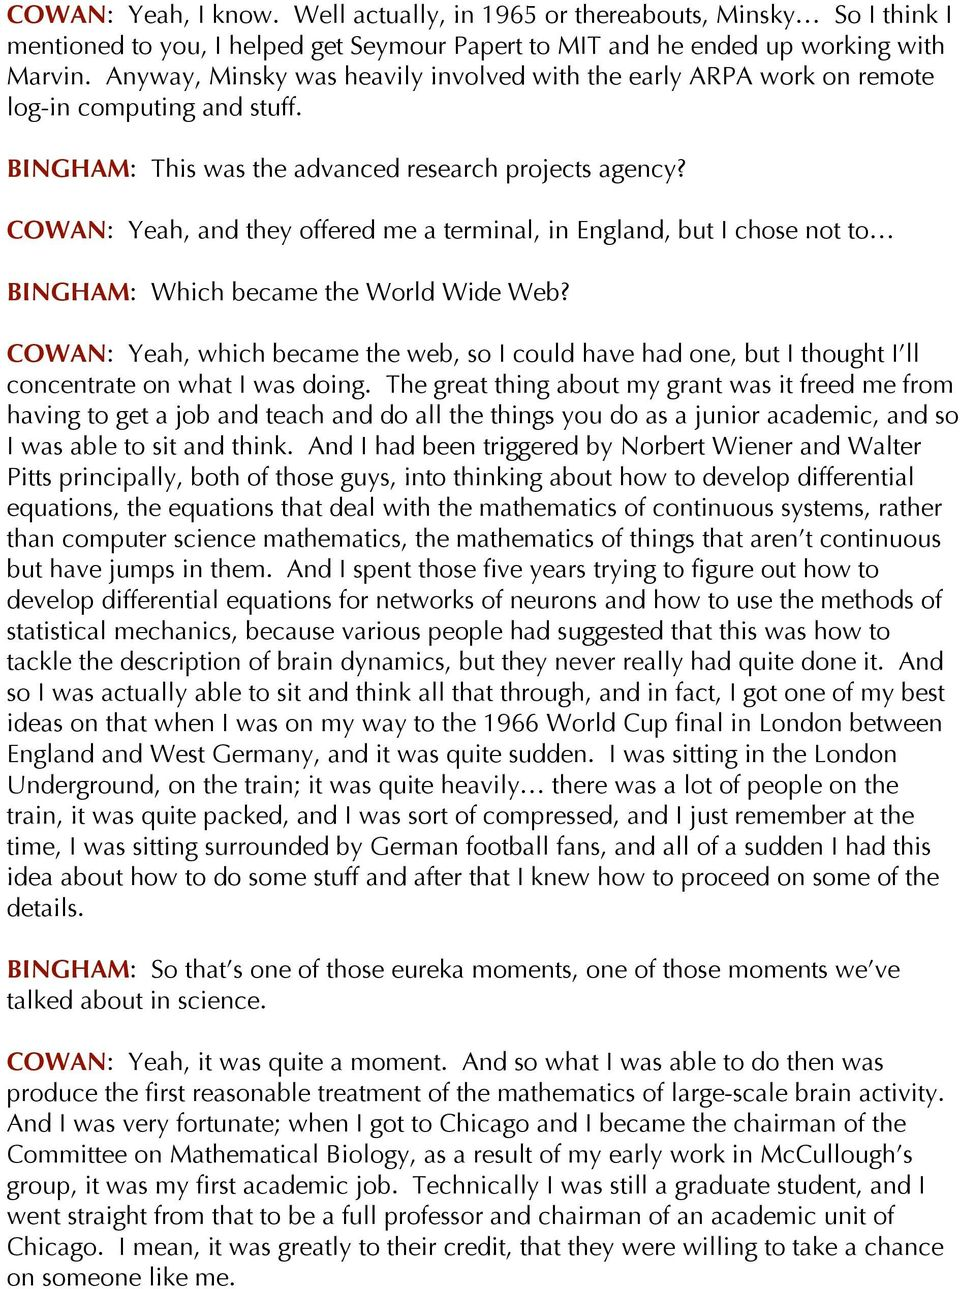 COWAN: Yeah, and they offered me a terminal, in England, but I chose not to BINGHAM: Which became the World Wide Web?